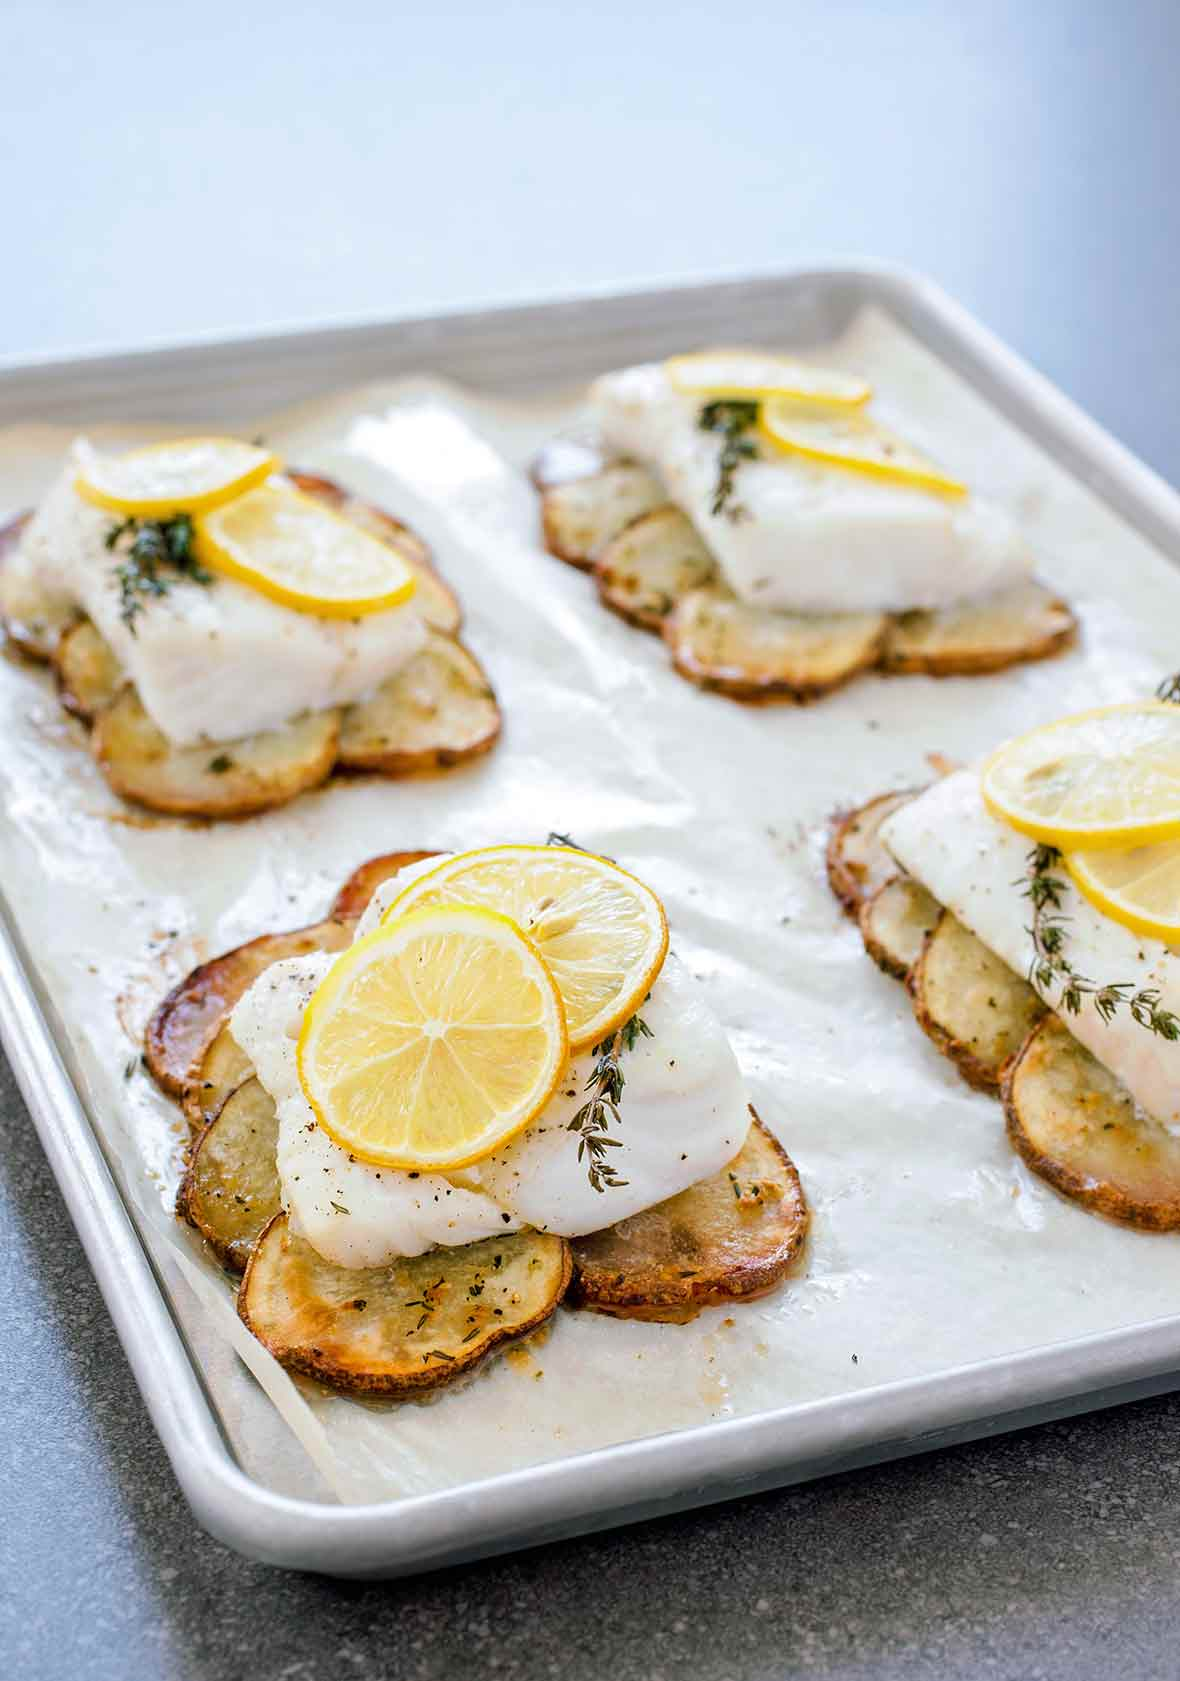 A parchment-lined baking sheet with four roasted cod fillet on top of roasted potatoes slices and topped with lemon slices